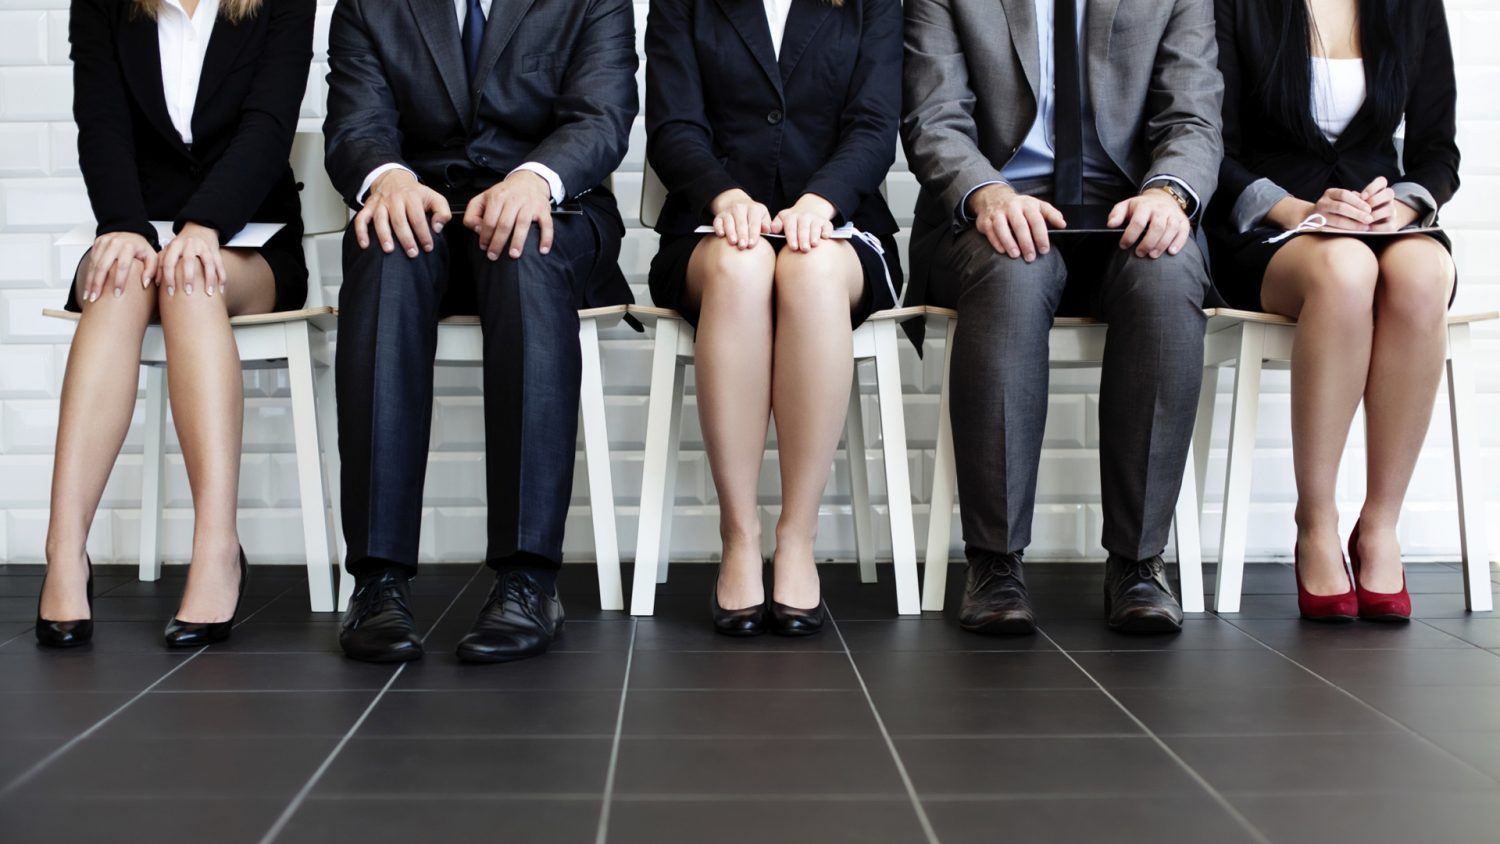 interview tips that will help you get the job redcat recruitment job interviewing never seems to get any easier even when you have gone on more interviews than you can count you are always meeting new people